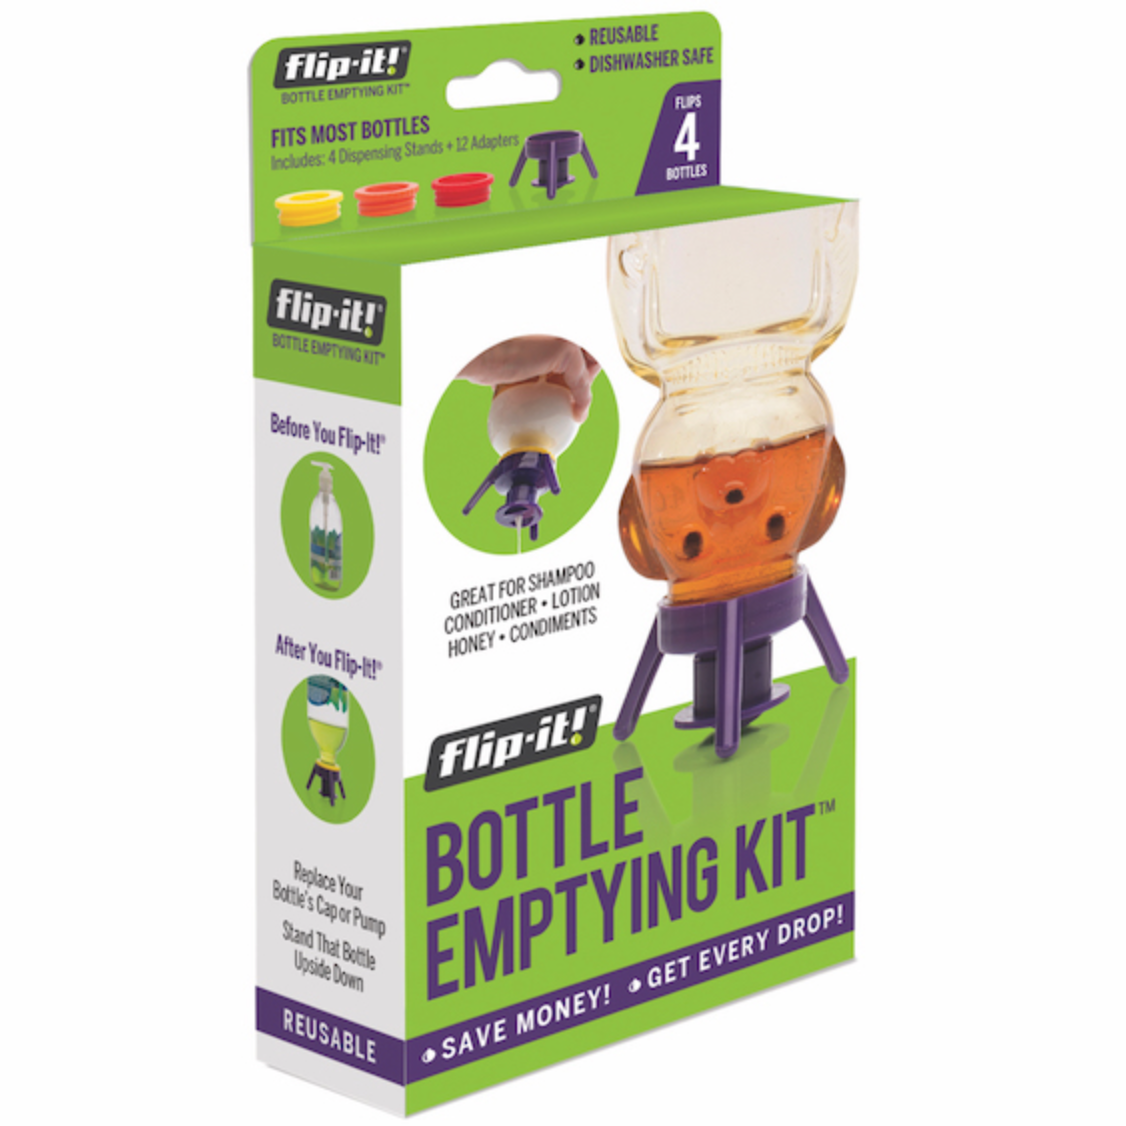 Flip-It!® Bottle Emptying Kit™, 4-Pack